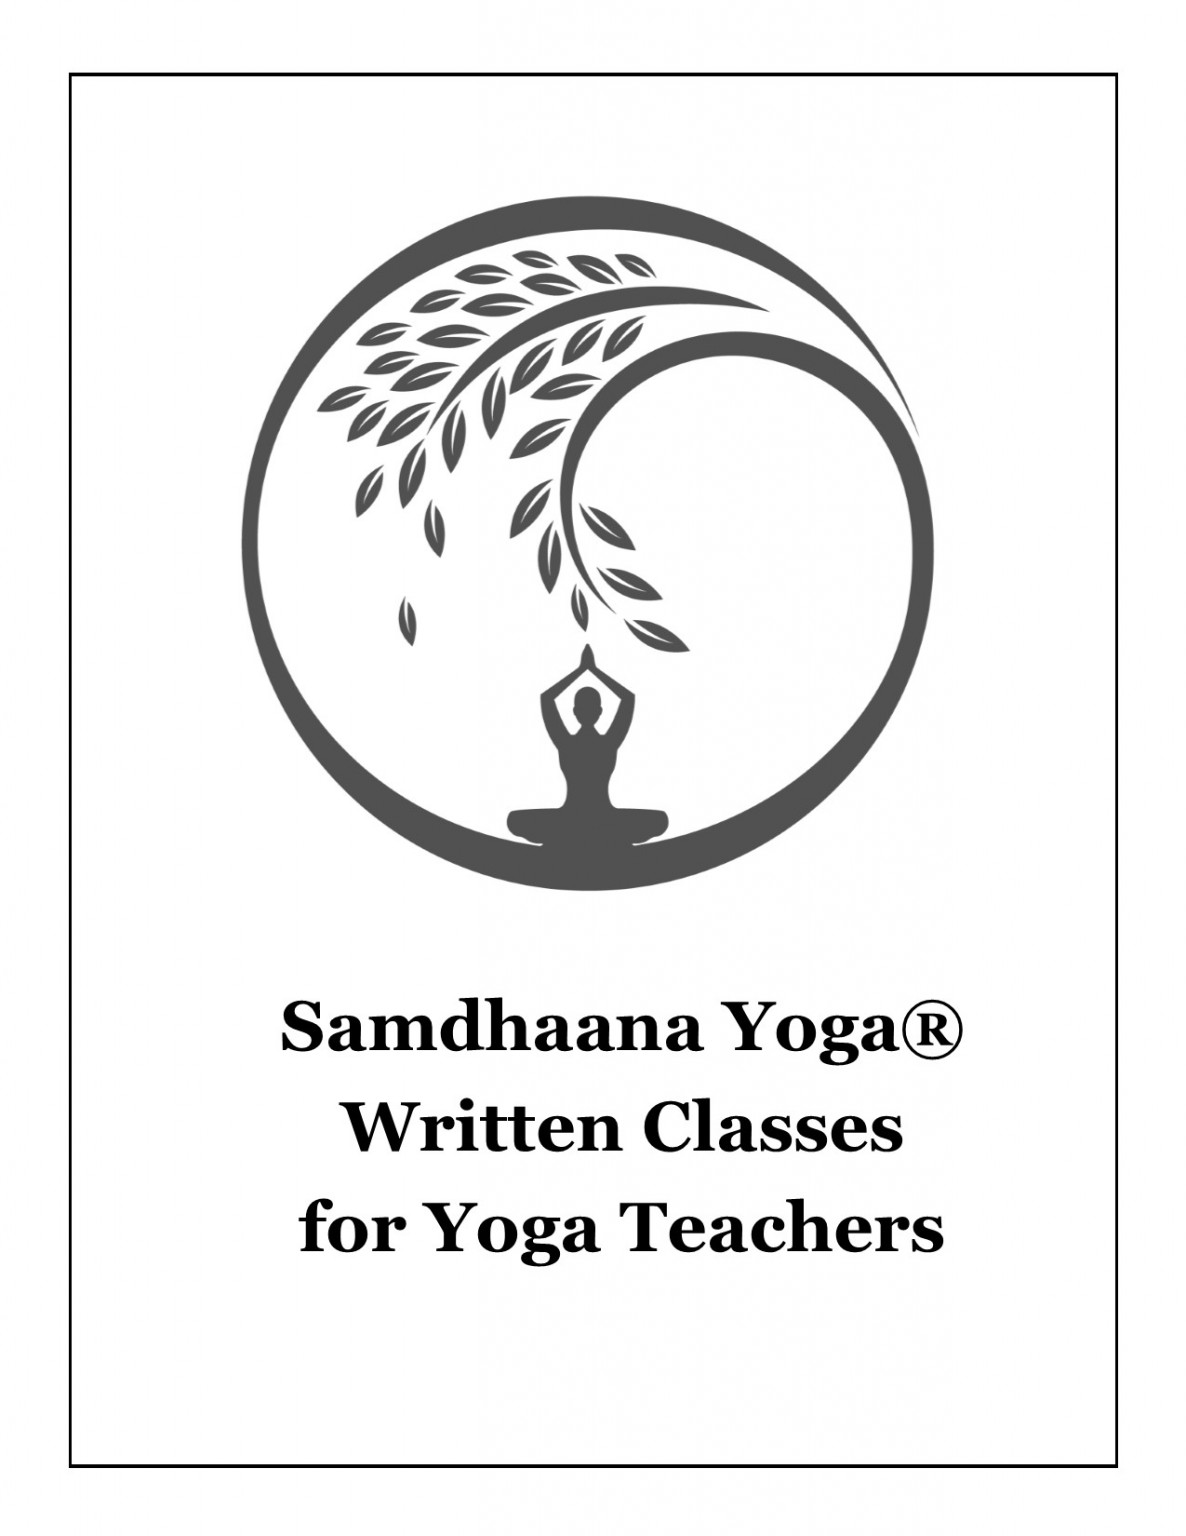 samdhaana yoga written classes